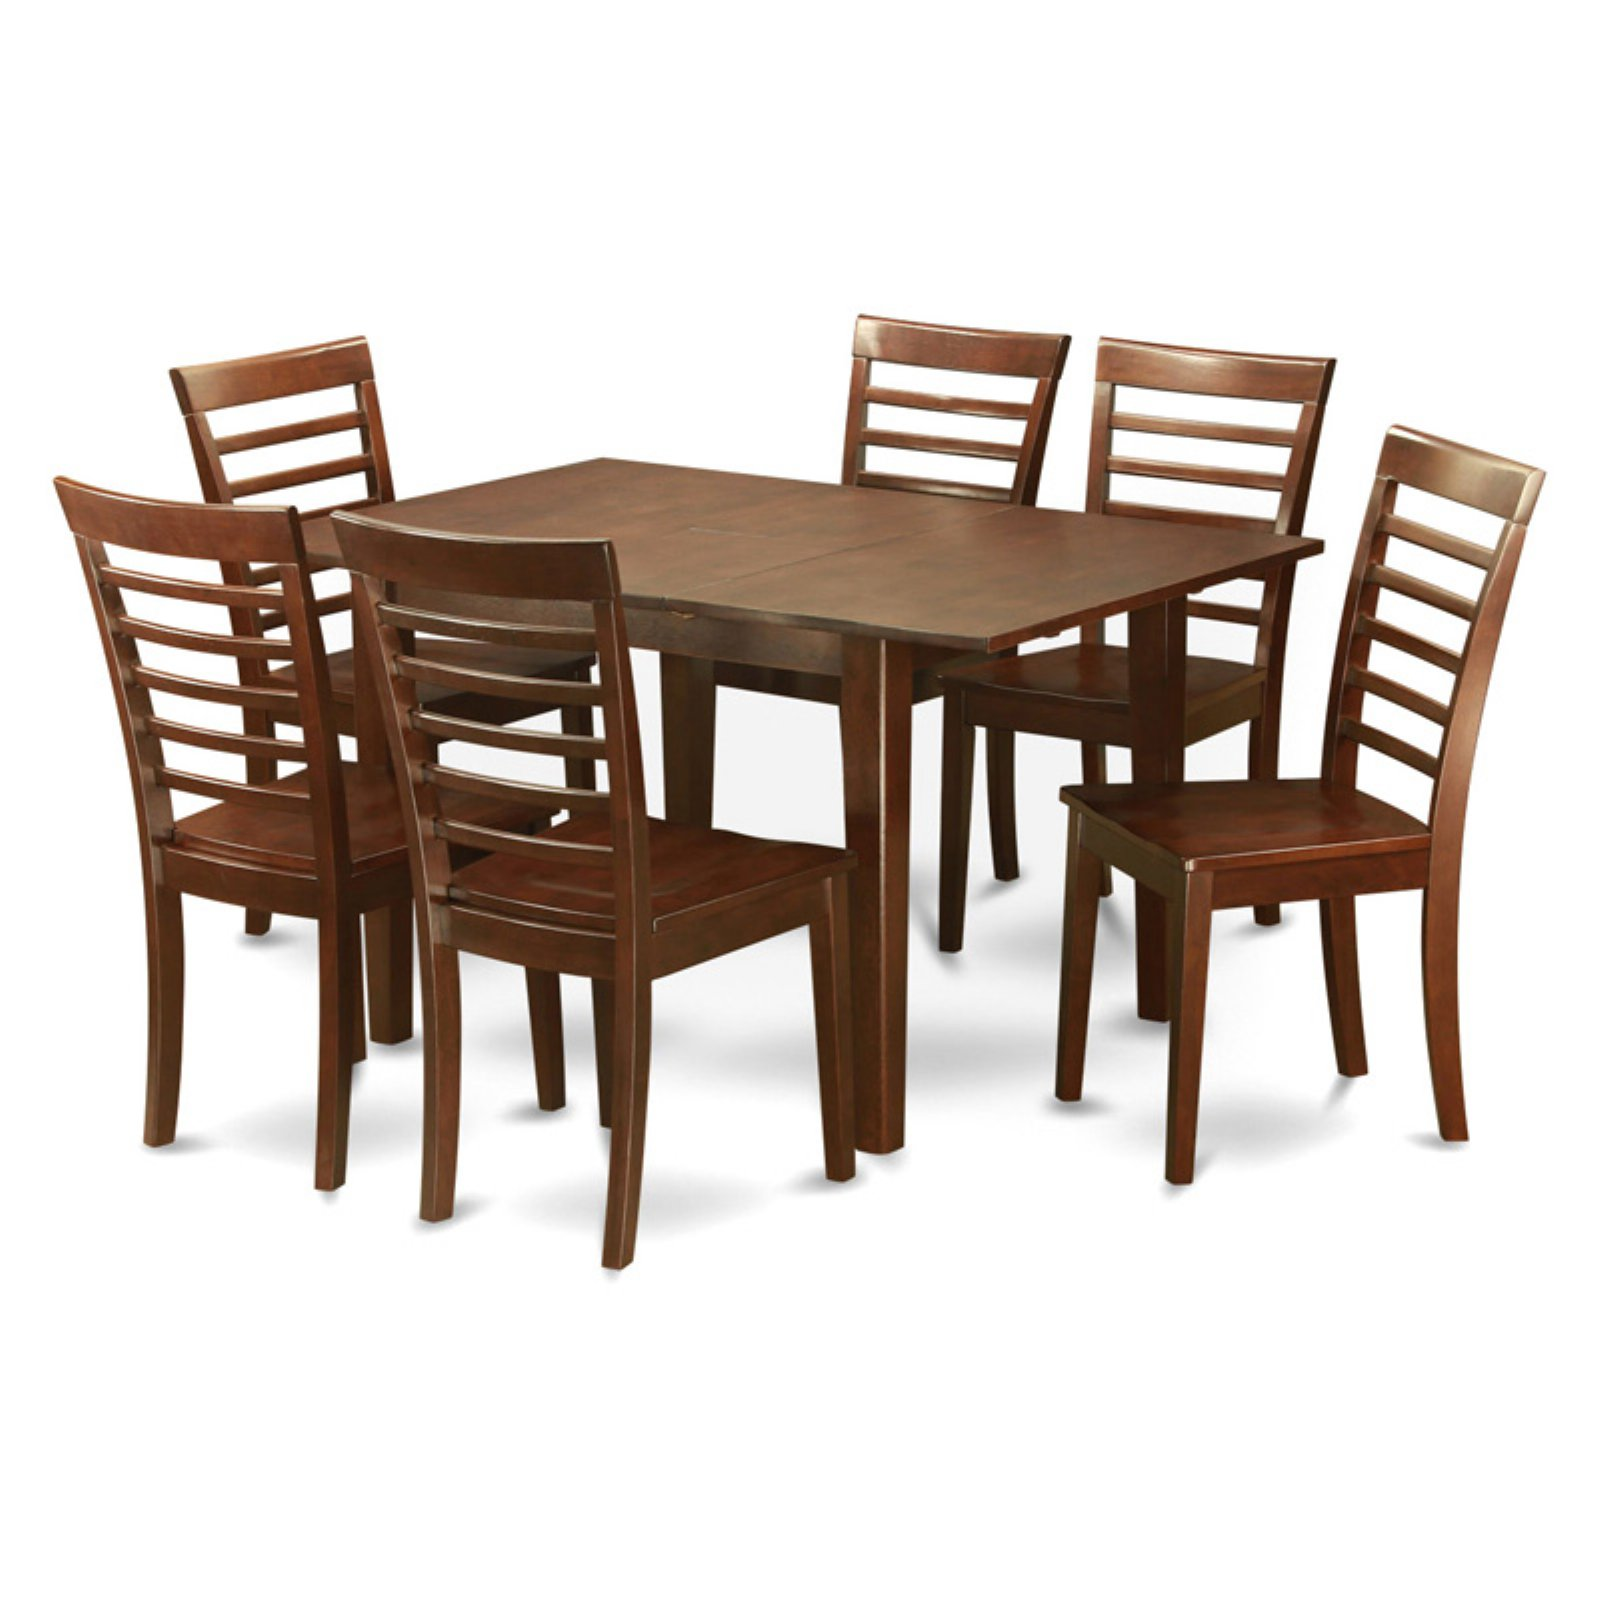 East West Furniture Milan 7 Piece Small Space Rectangular Dining Table Set